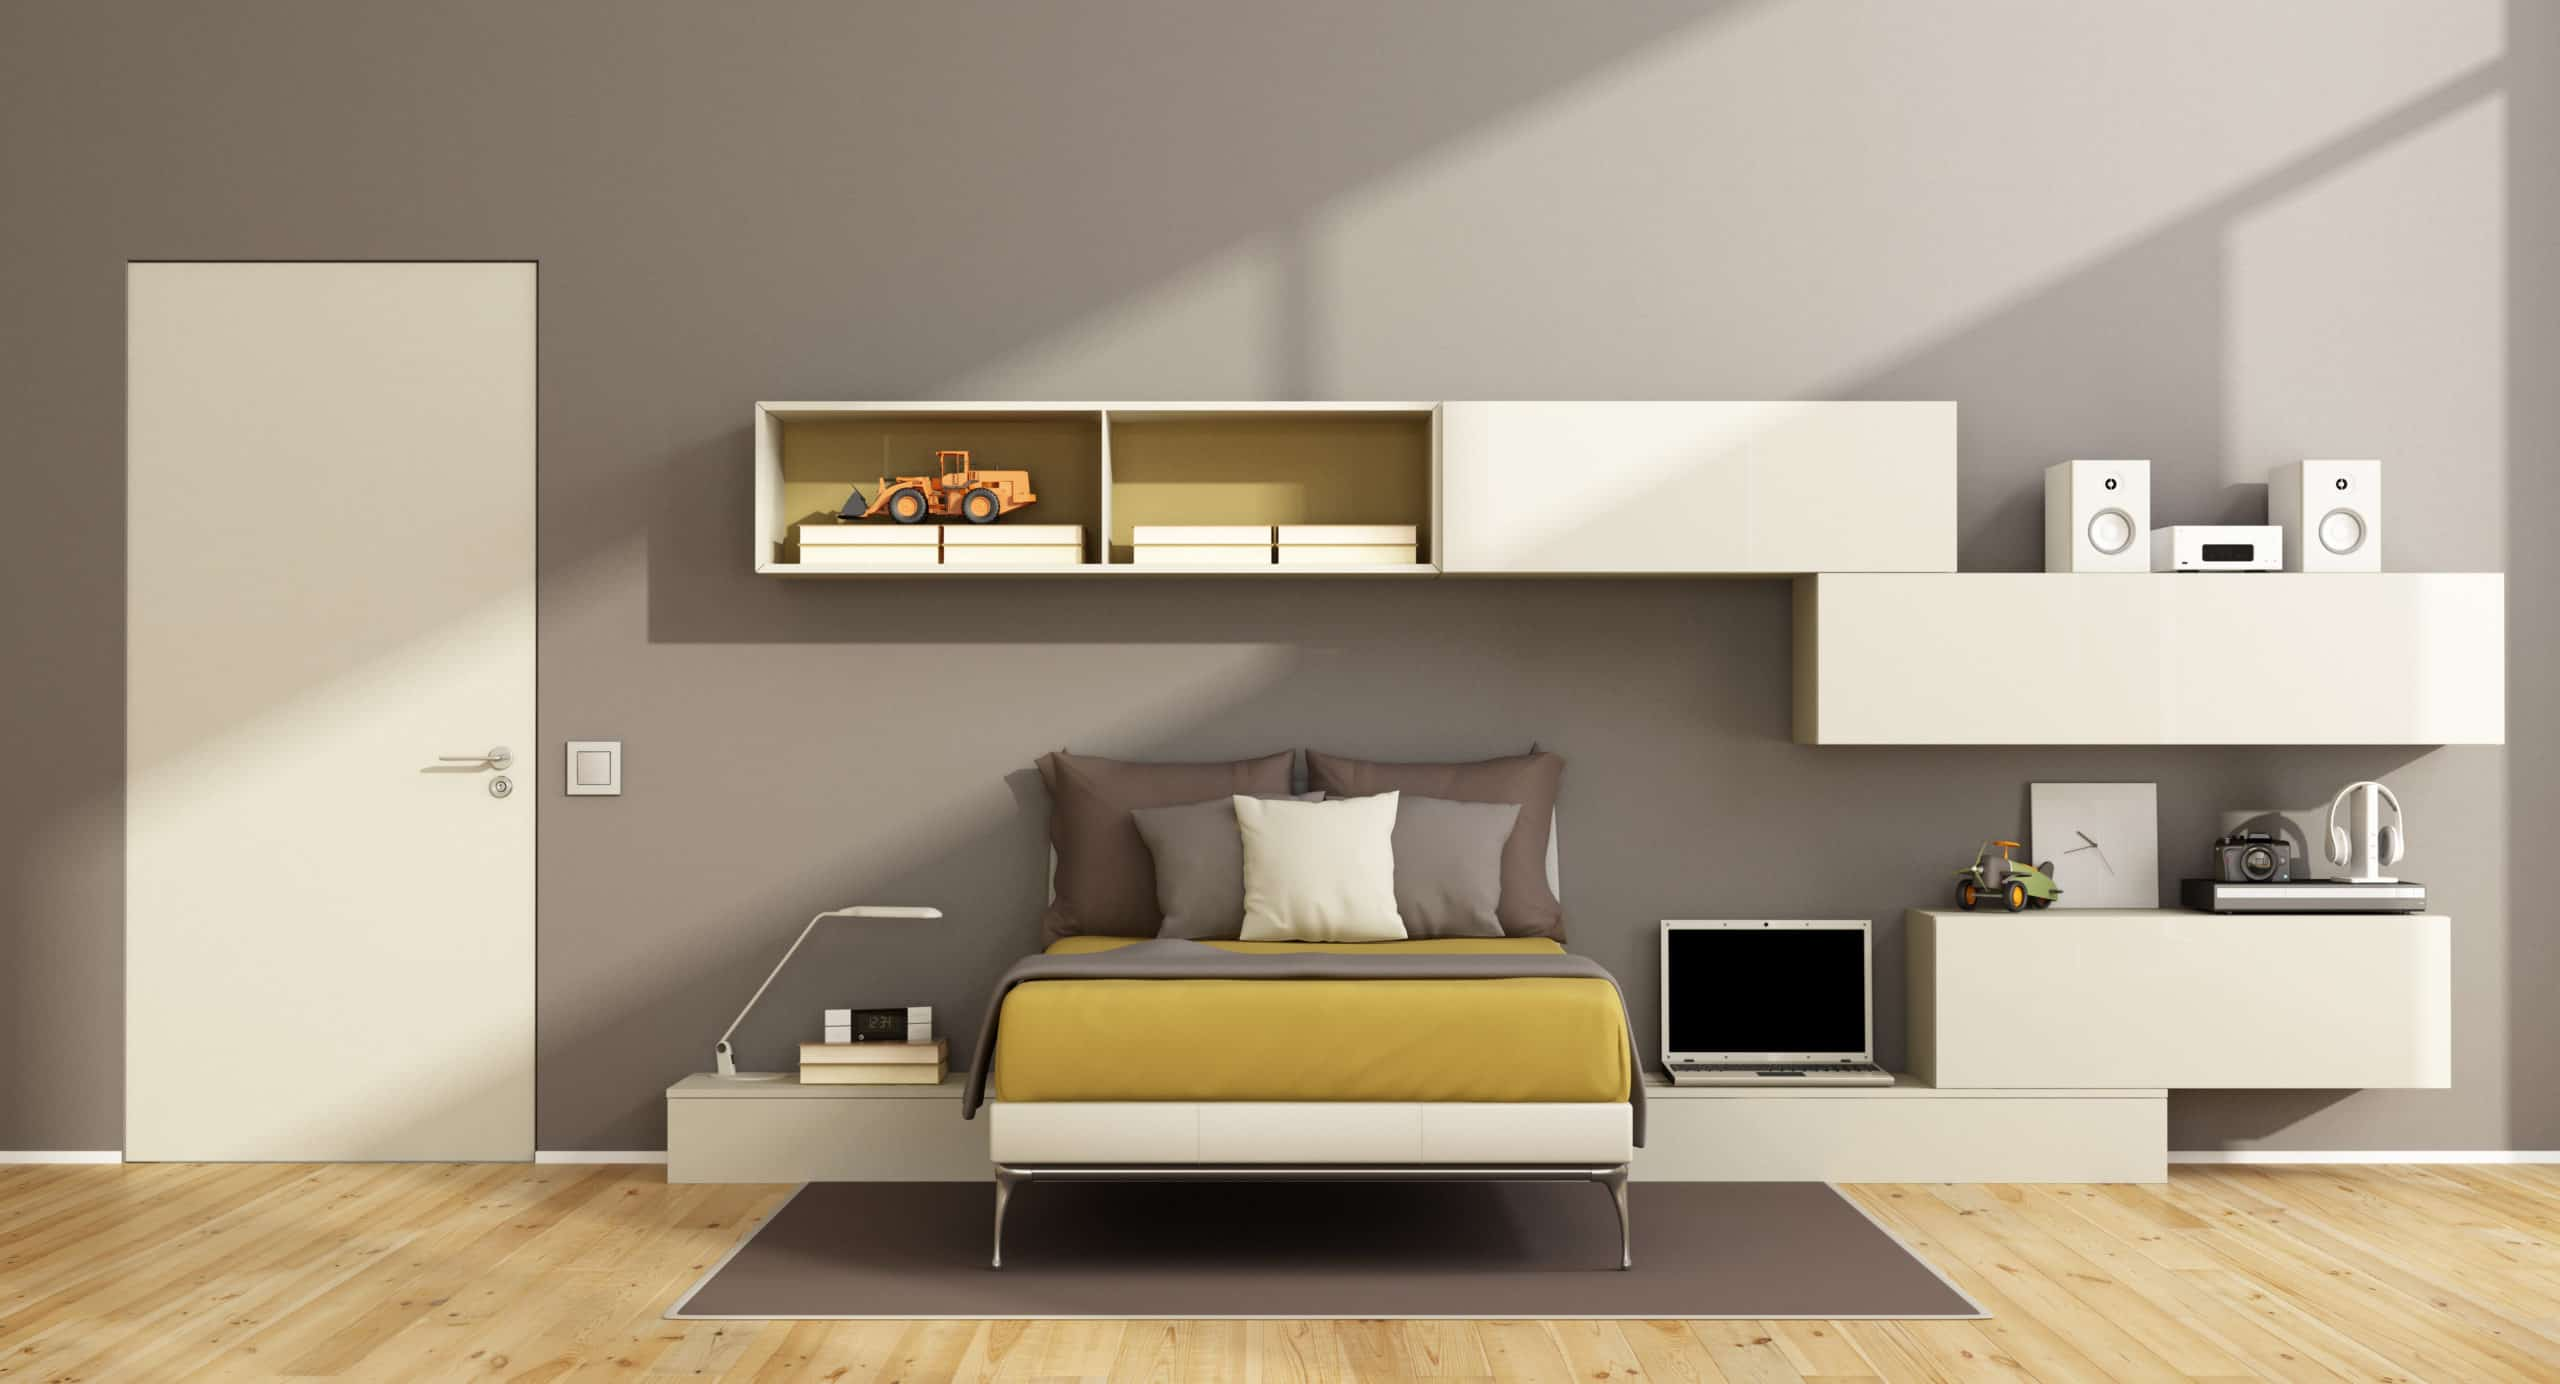 How To Use Bedroom Organizers Effectively?